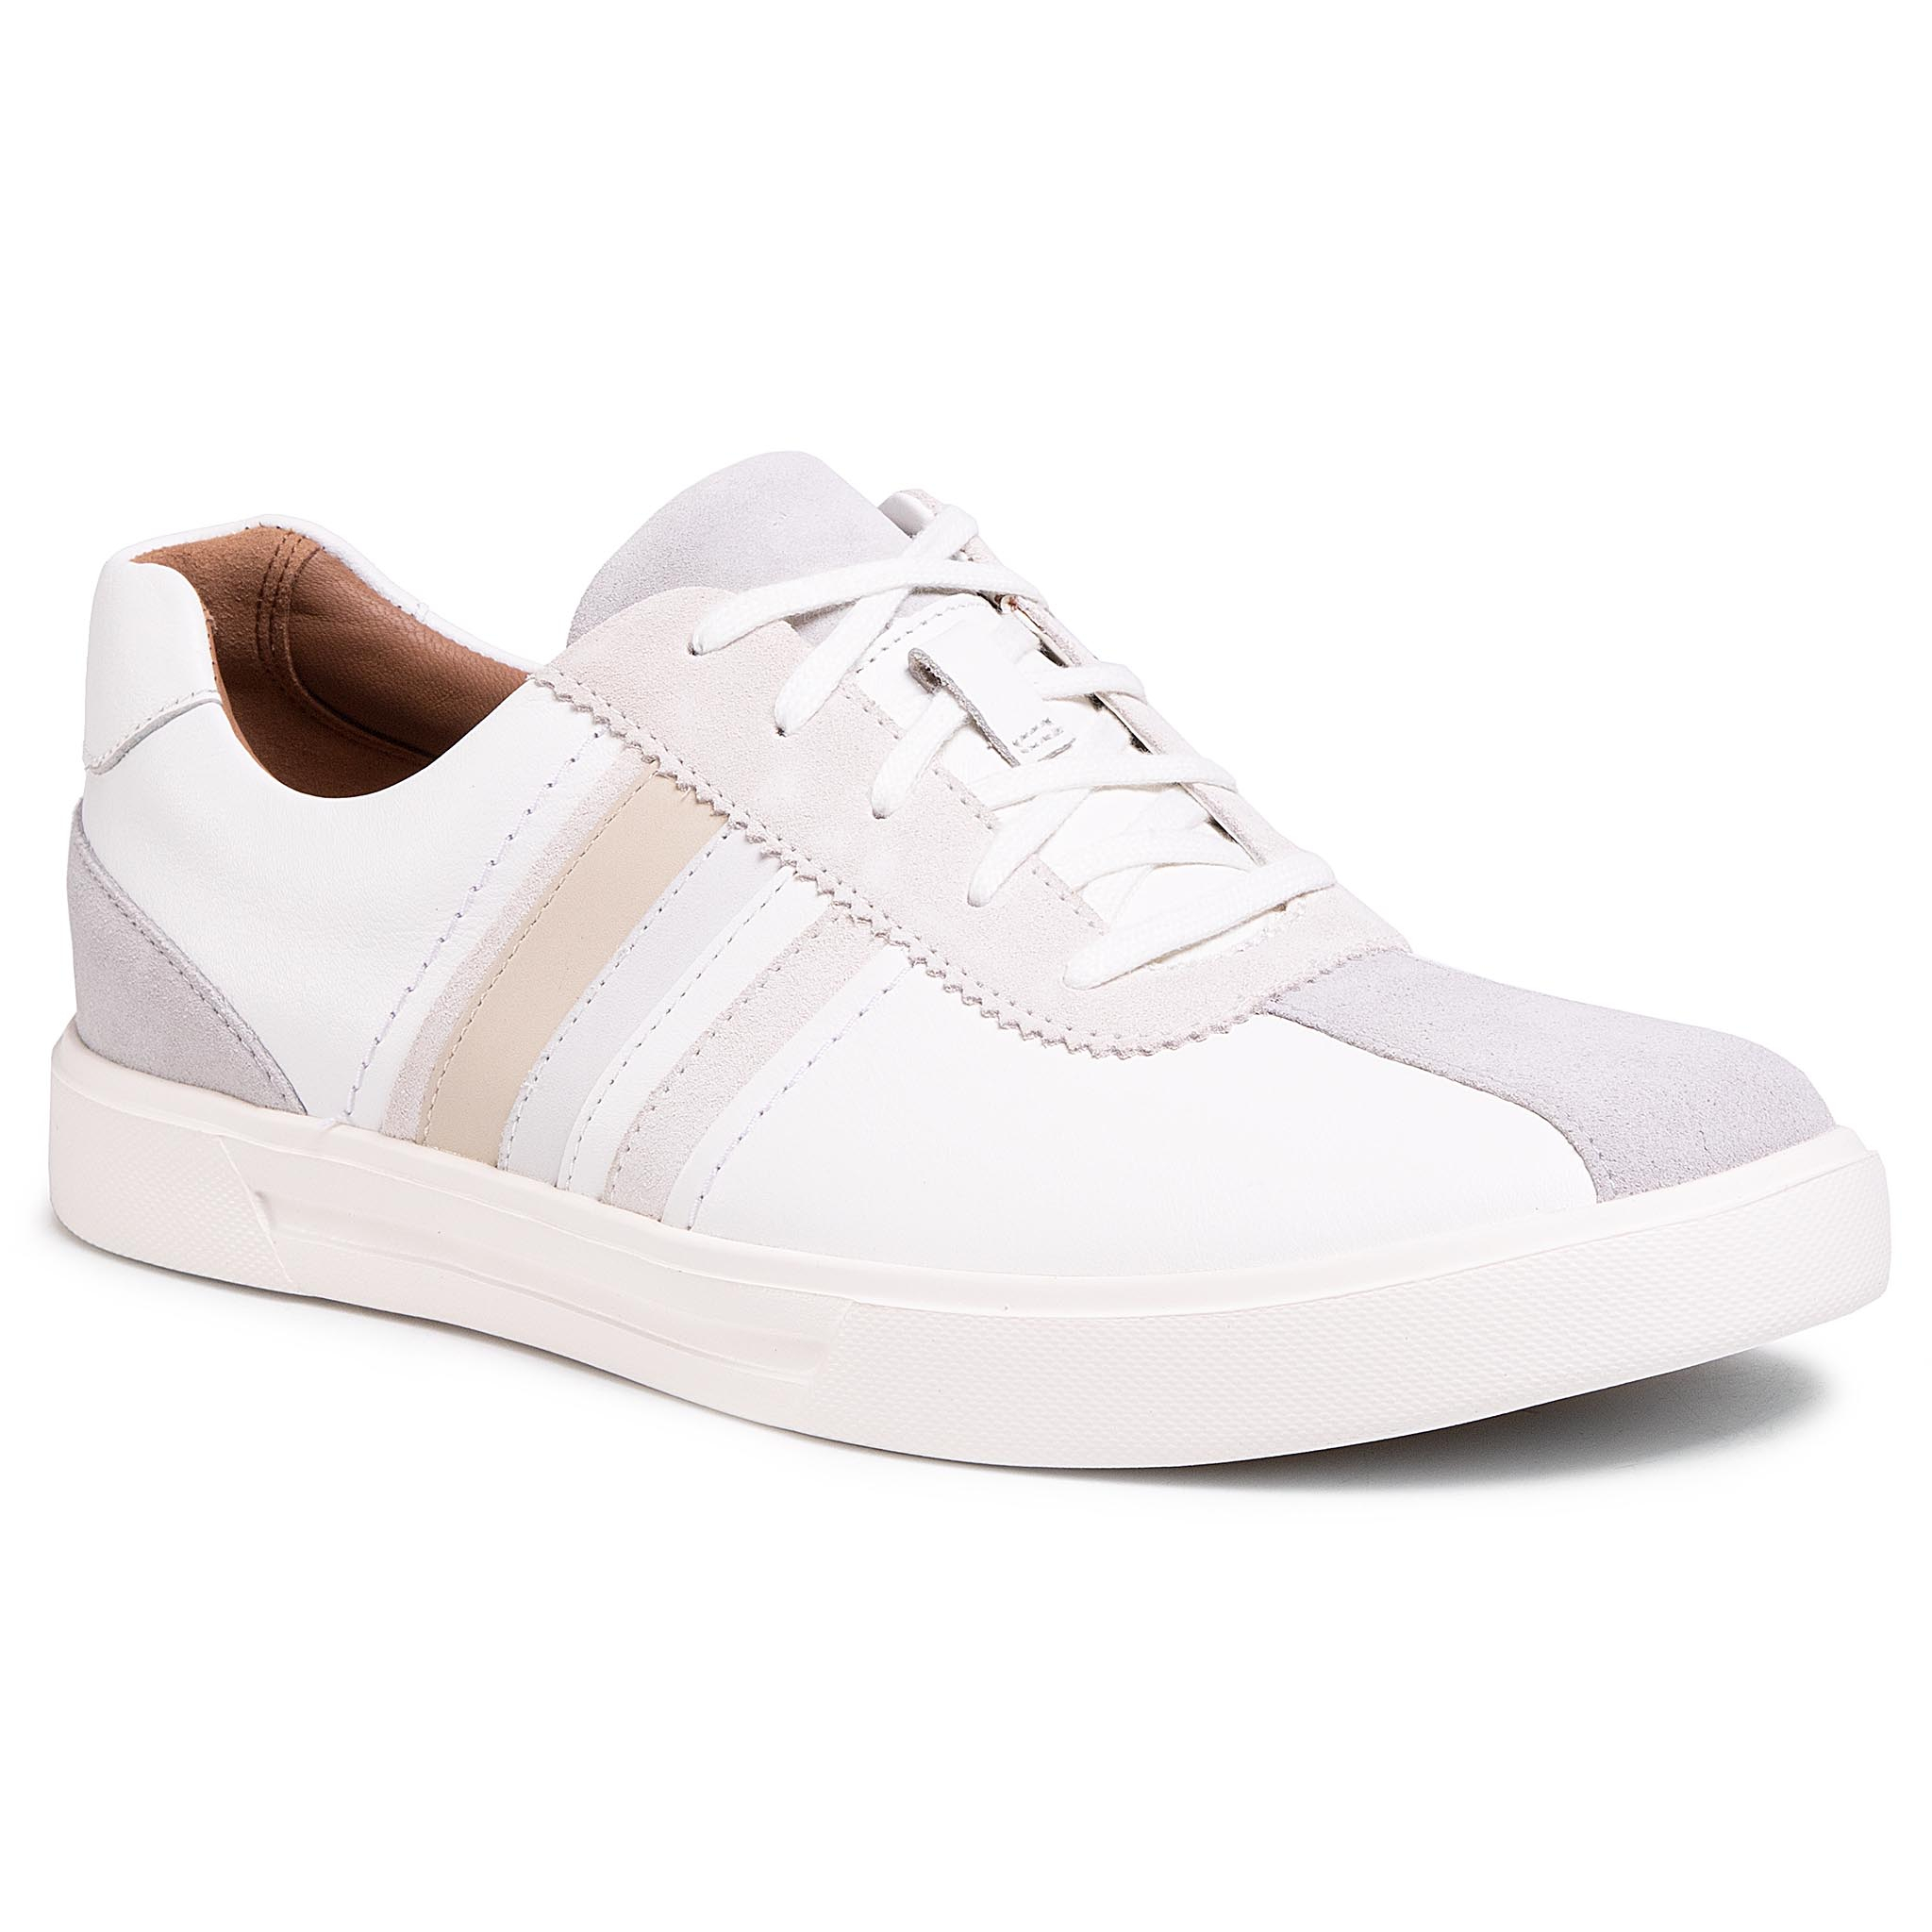 Sneakers CLARKS - Un Costa Band 261505517 White